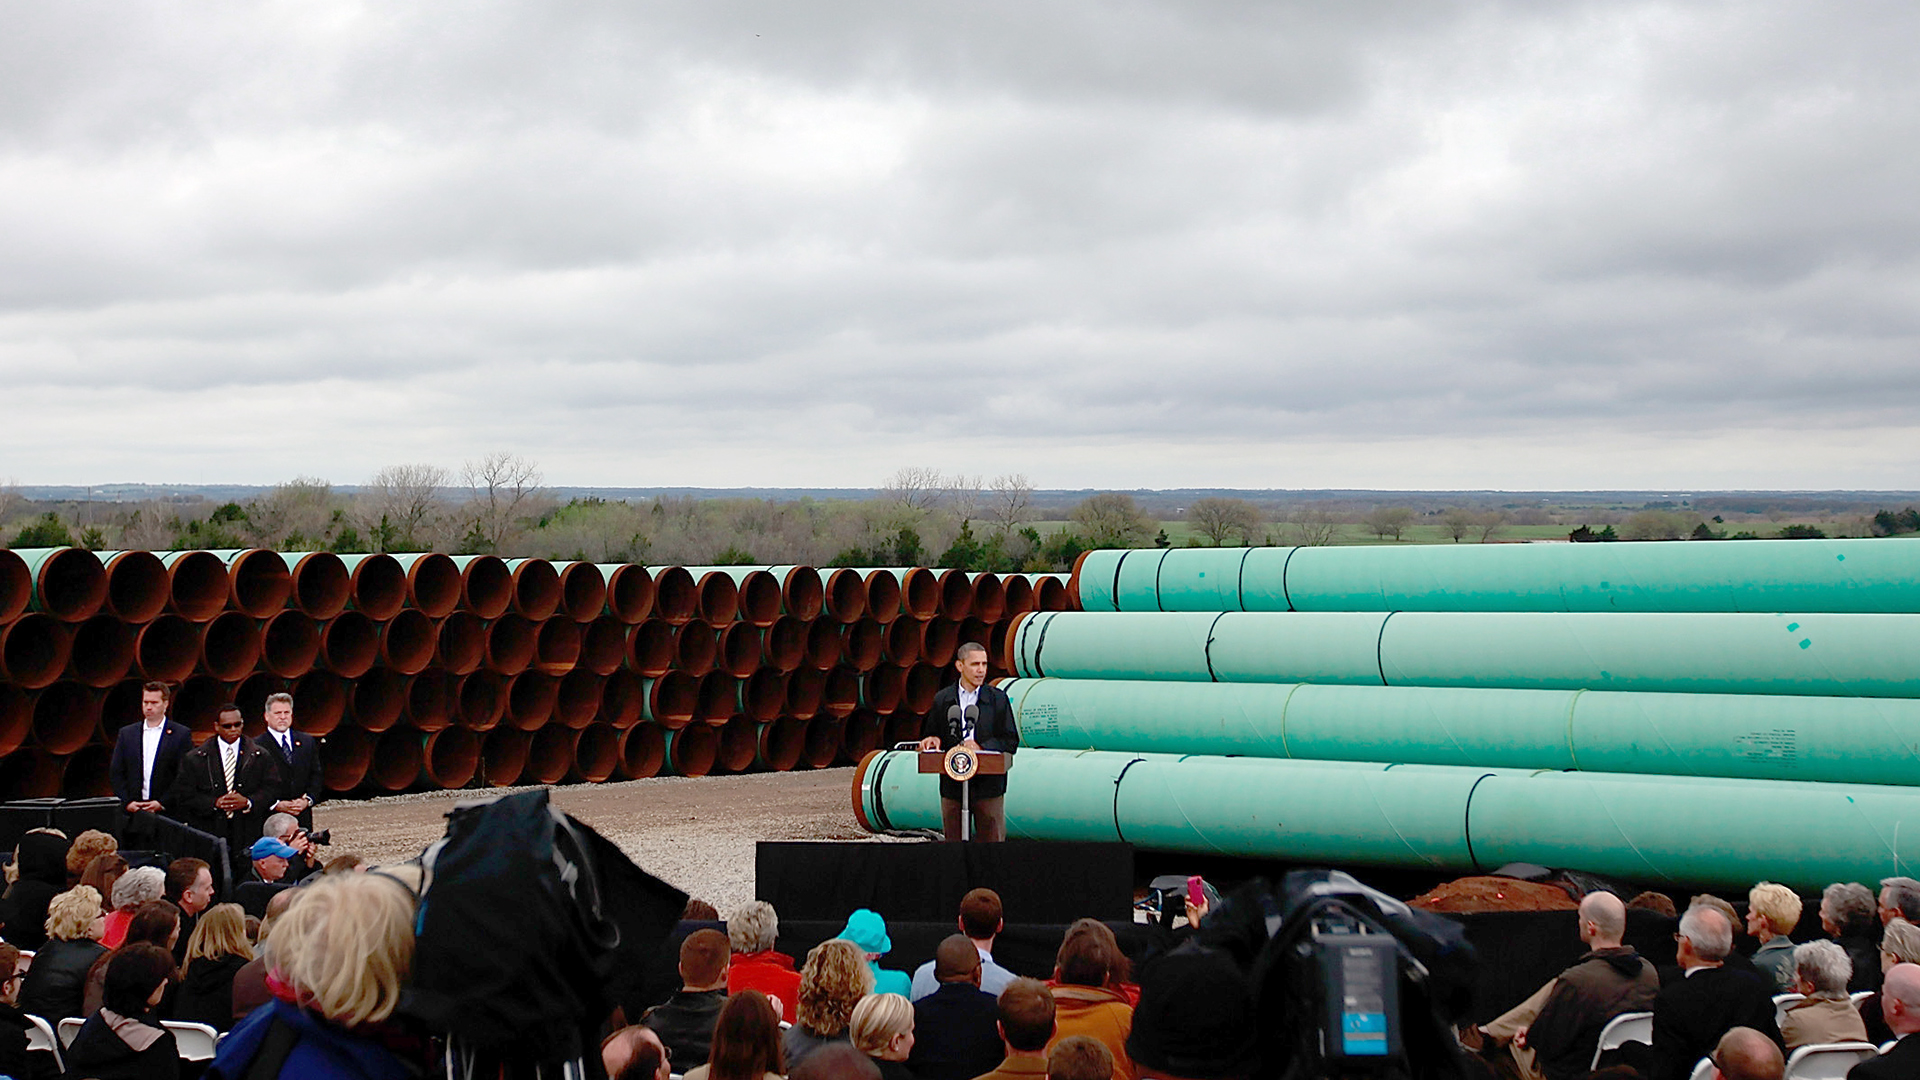 President Obama Speaks At Southern Site Of The Keystone Oil Pipeline